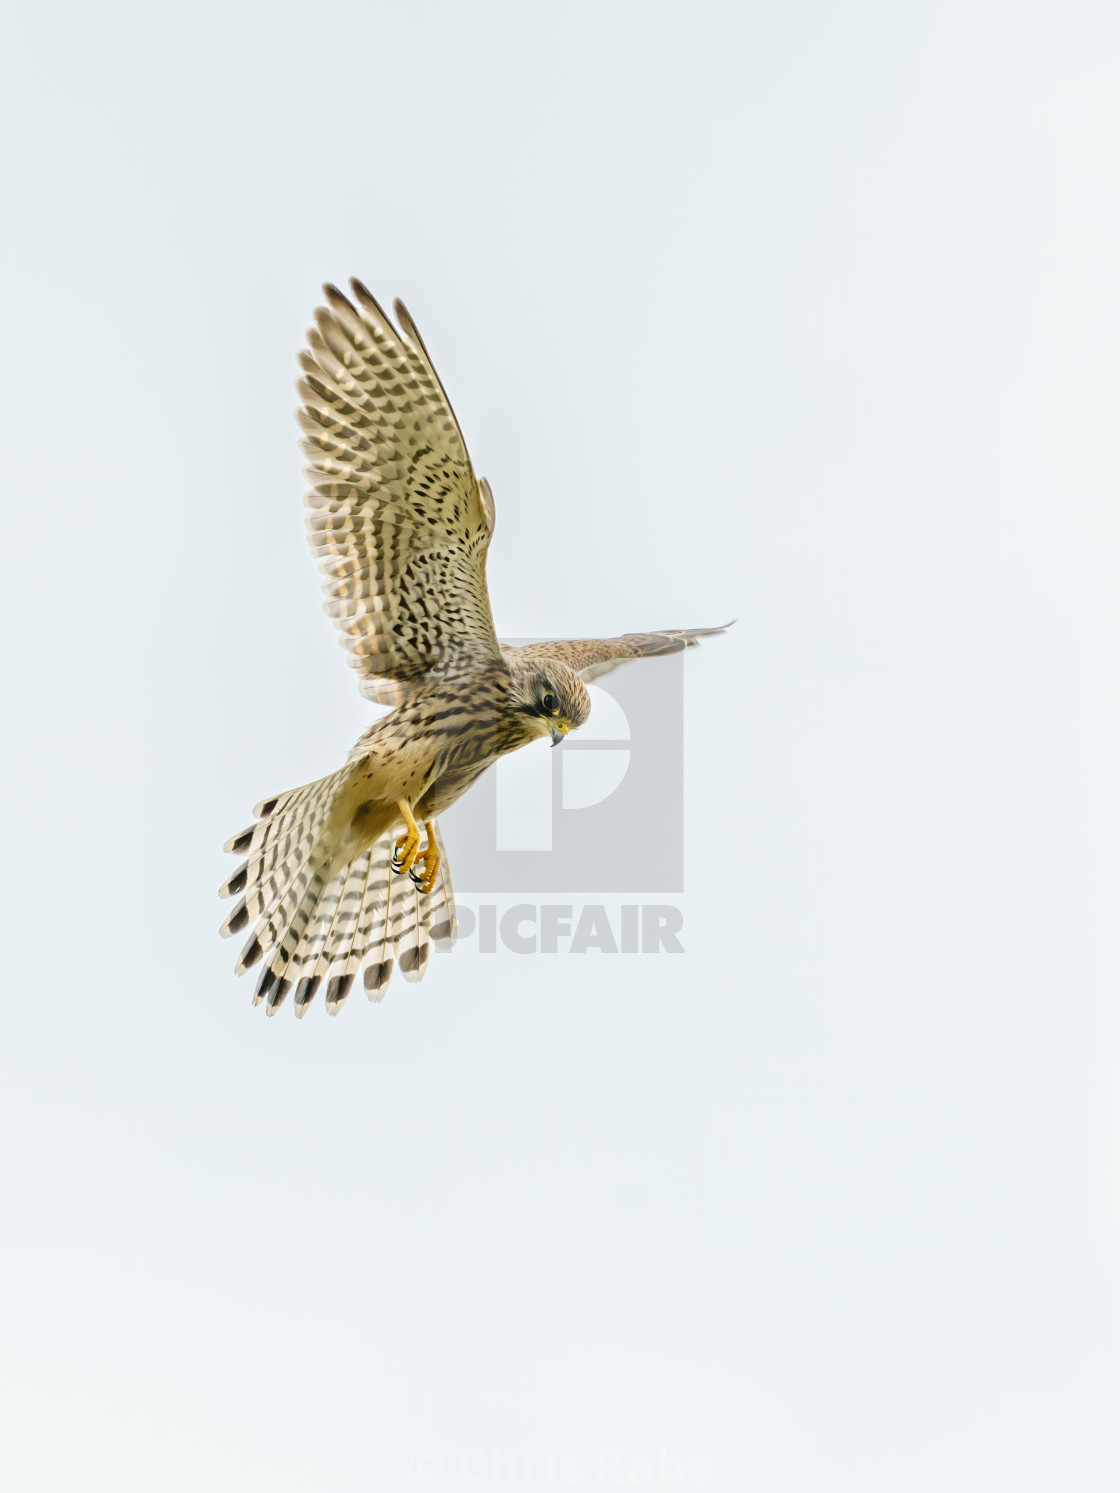 """Common Kestrel (Falco tinnunculus) hovering, hunting for food, taken in London"" stock image"